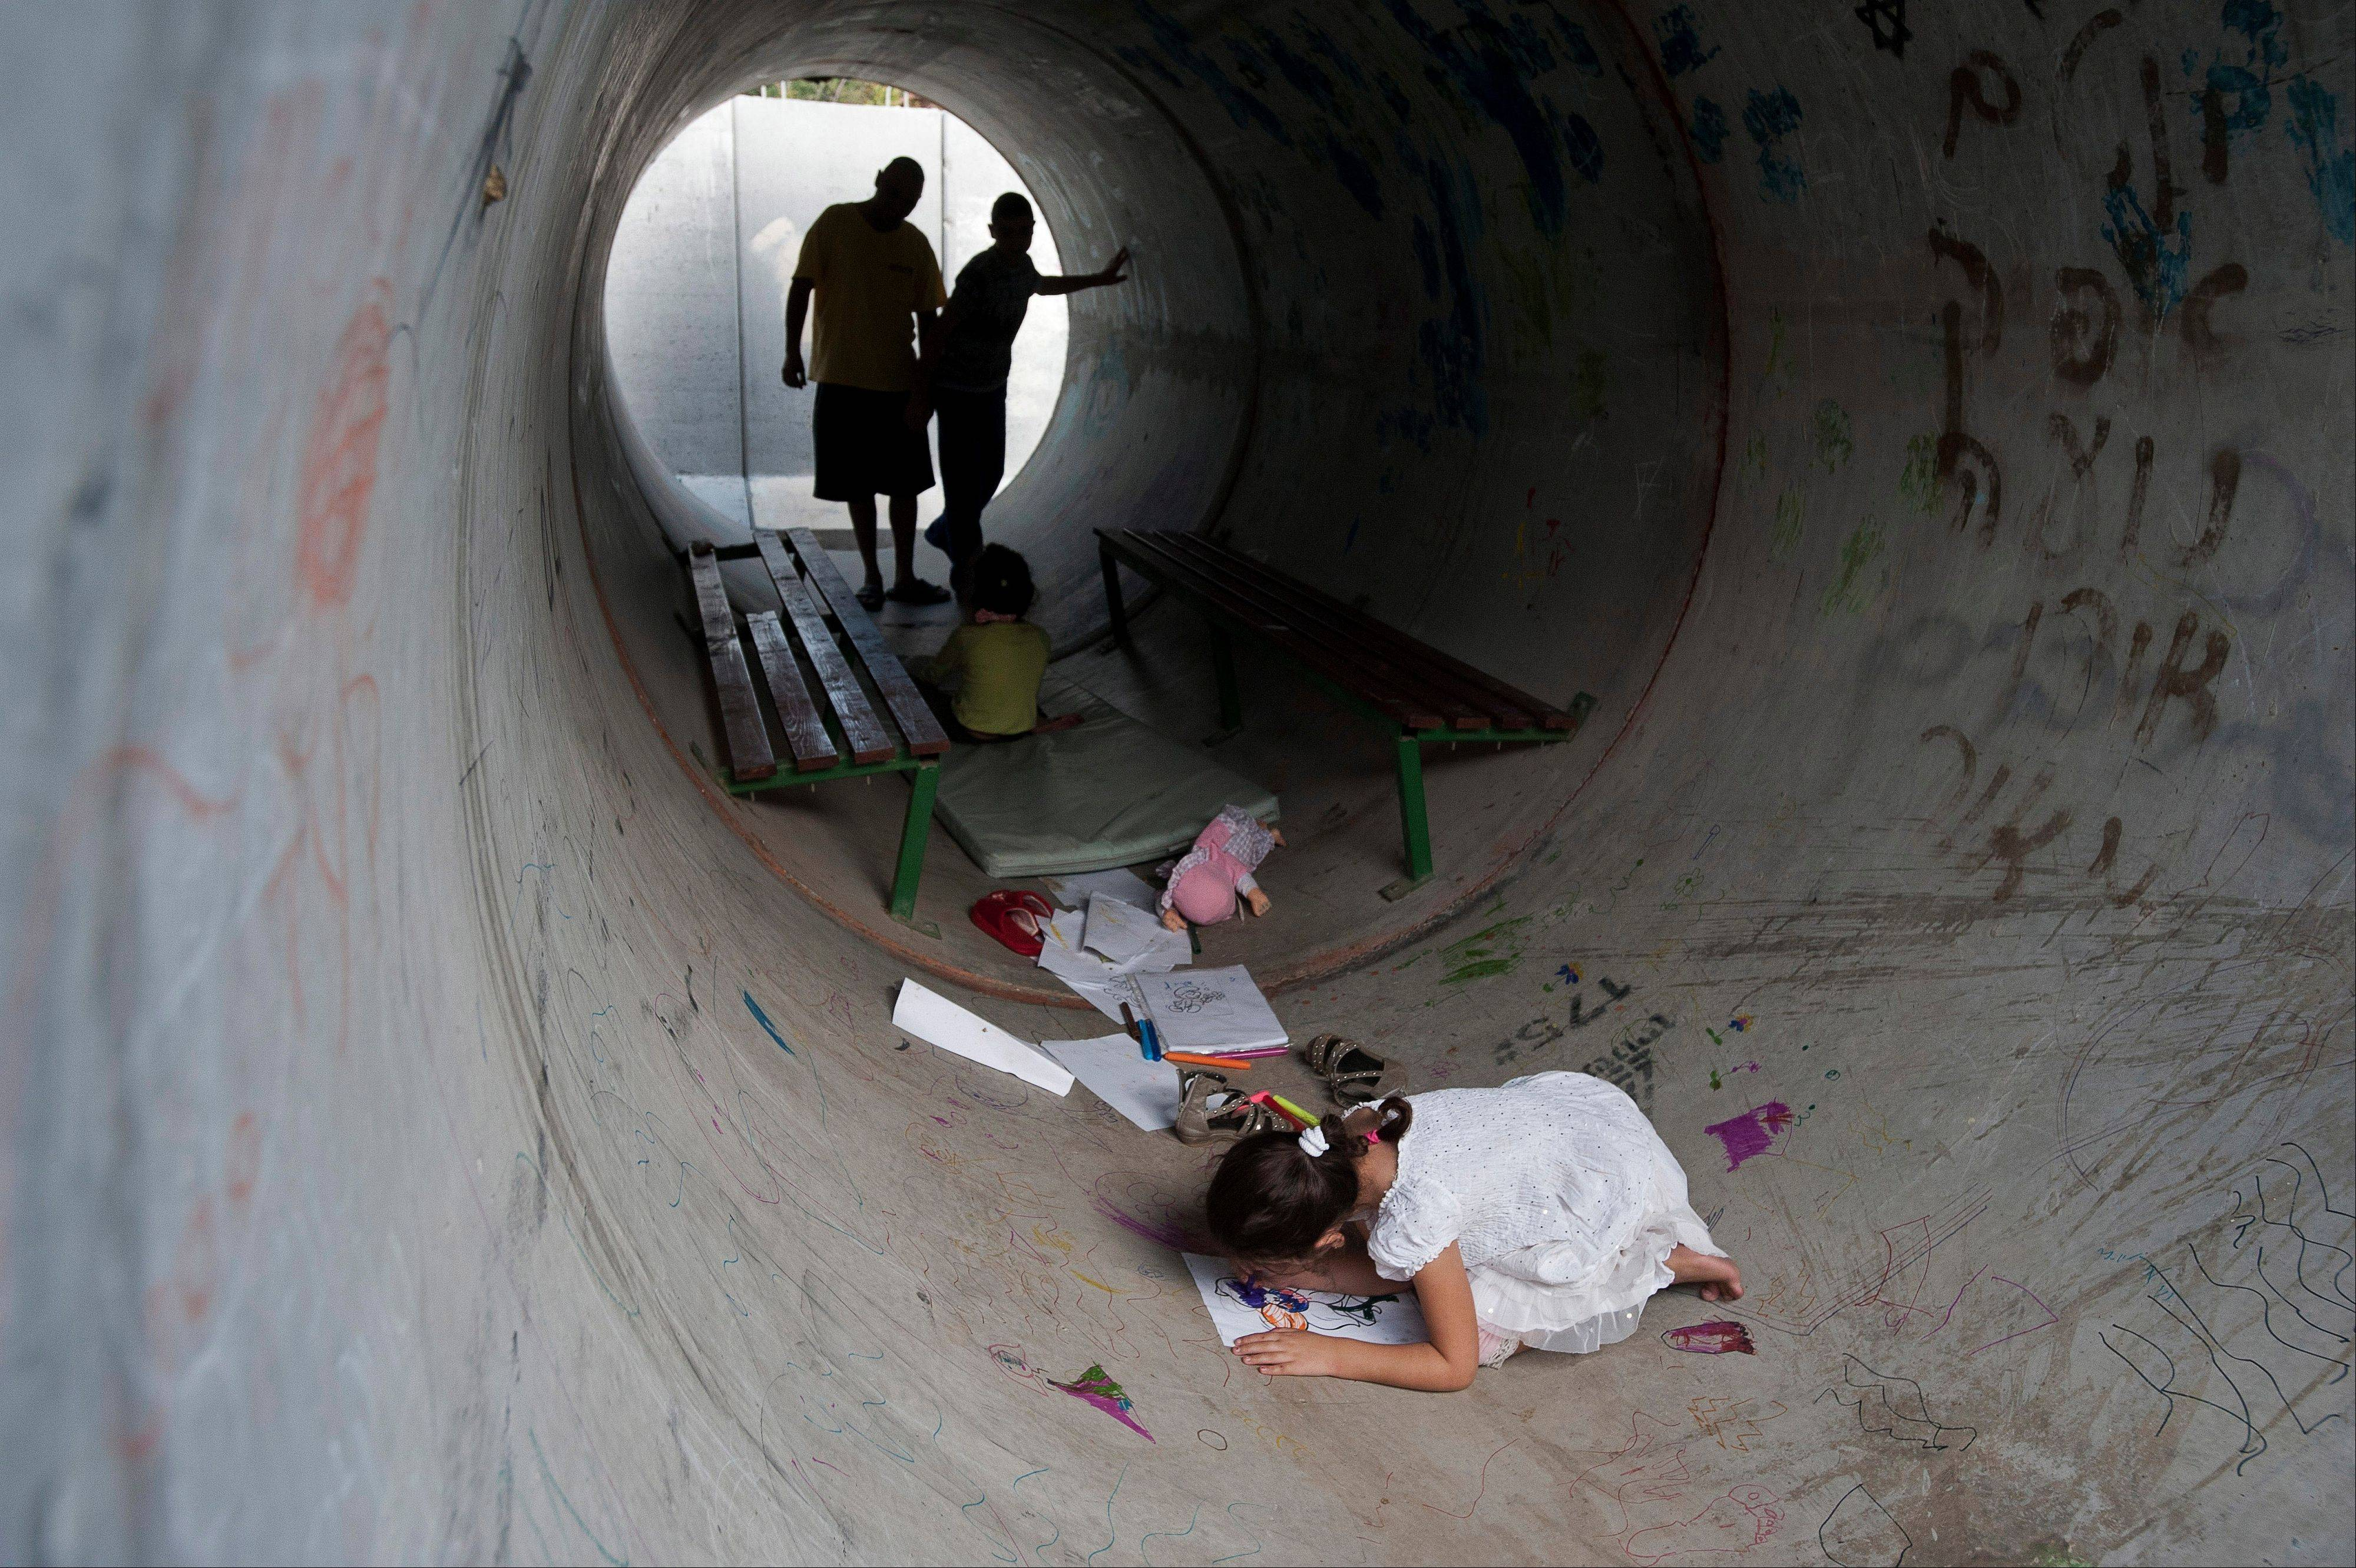 Israelis hide in a concrete tube during a rocket attack from Gaza, in Nitzan, southern Israel, Monday.